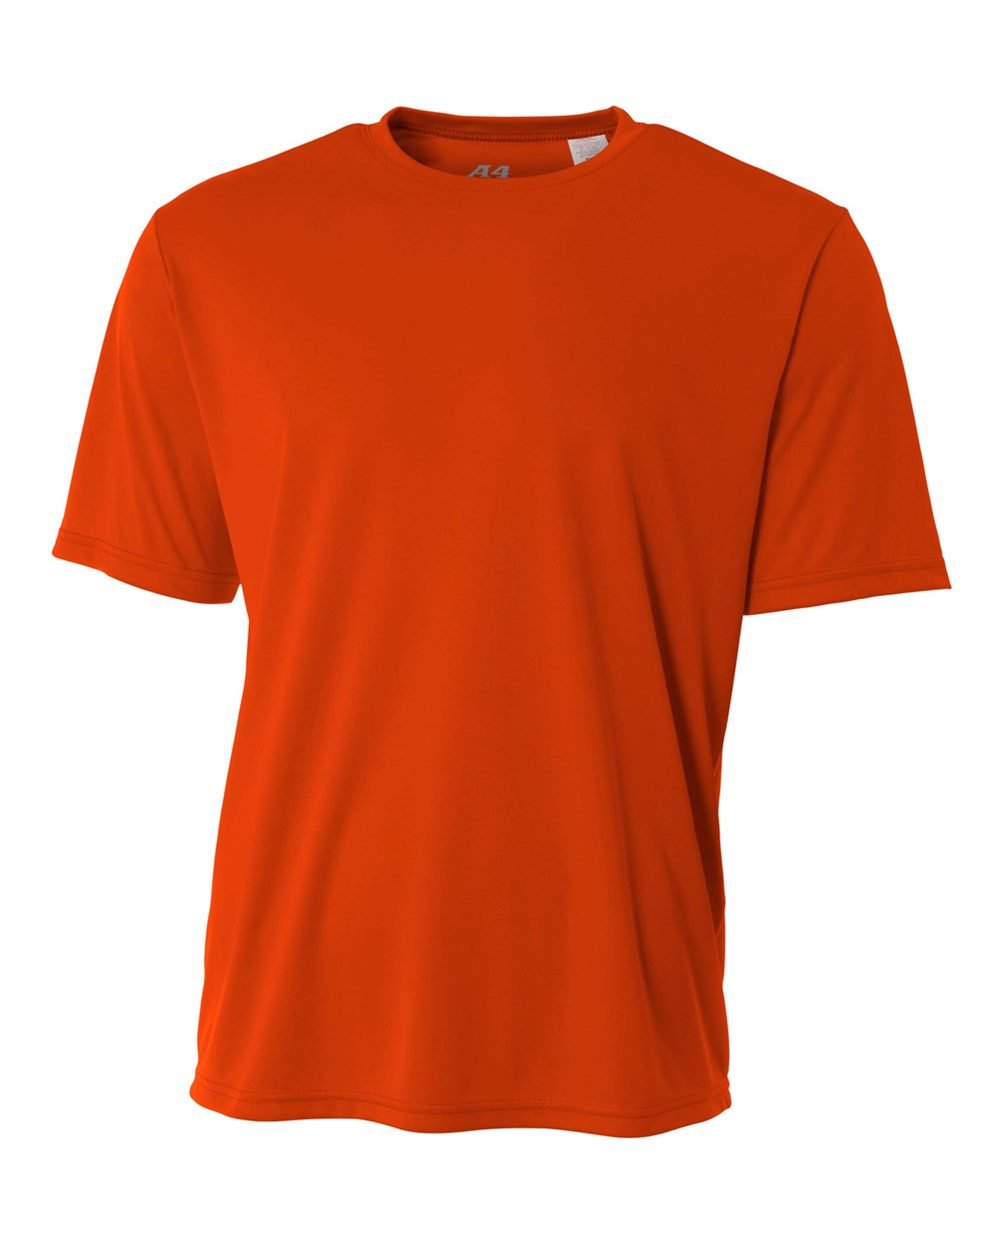 Amazon.com: A4 Men's Cooling Performance Crew Short Sleeve Tee ...